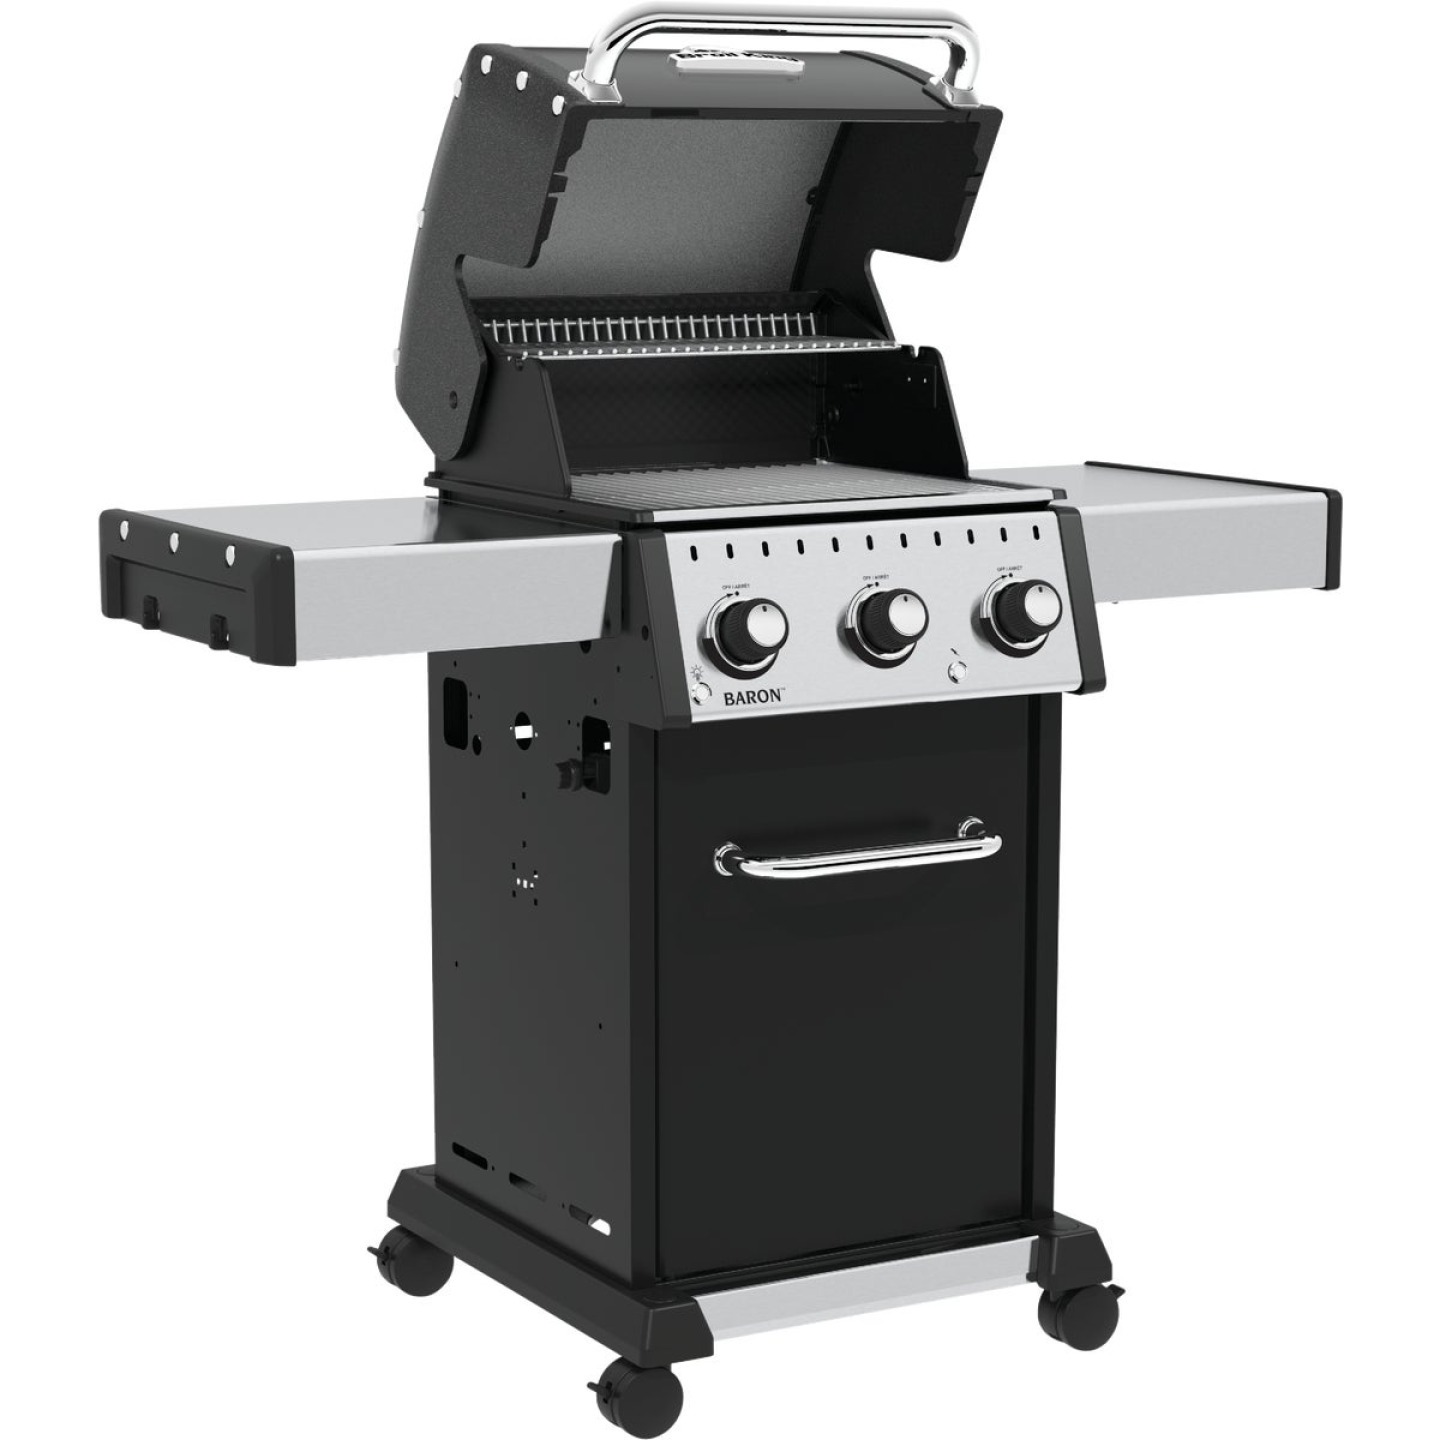 Broil King Baron 320 Pro 3-Burner Black 32,000 BTU LP Gas Grill Image 3